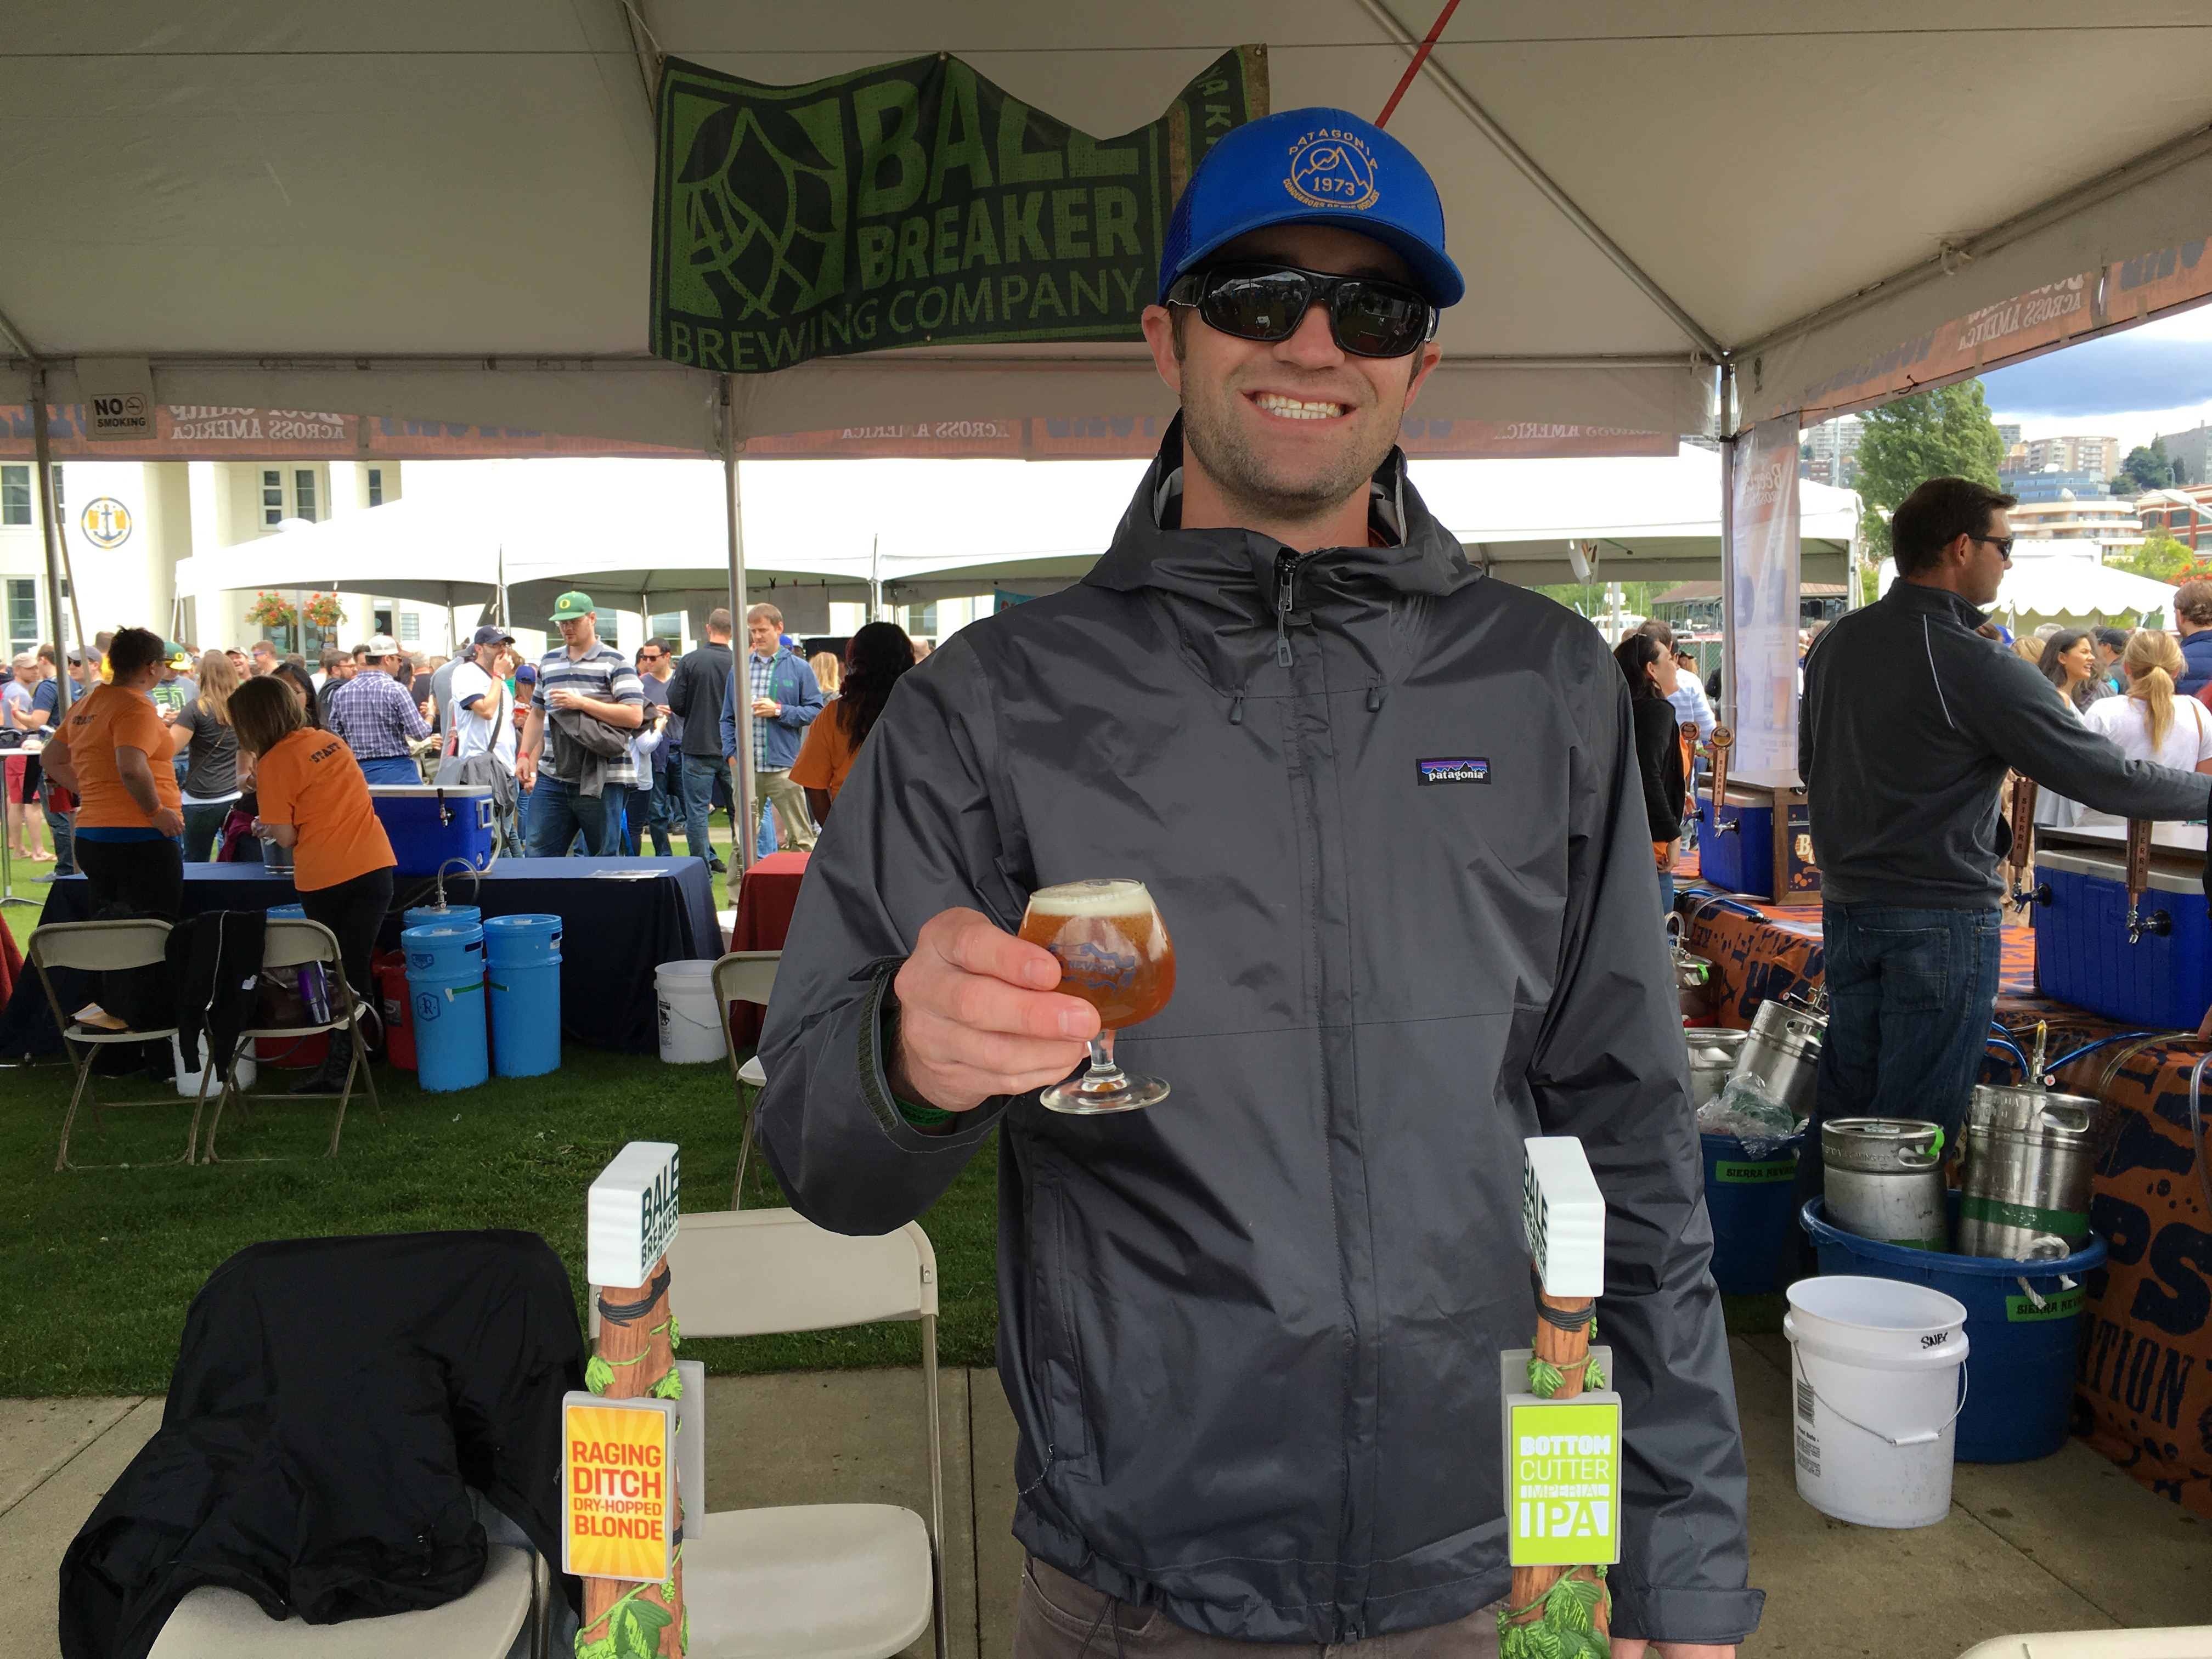 Kevin from Bale Breaker Brewing serving a Raging Ditch Dry-Hopped Blonde at Sierra Nevada Beer Camp Across America Festival in Seattle. (photo by D.J. Paul)